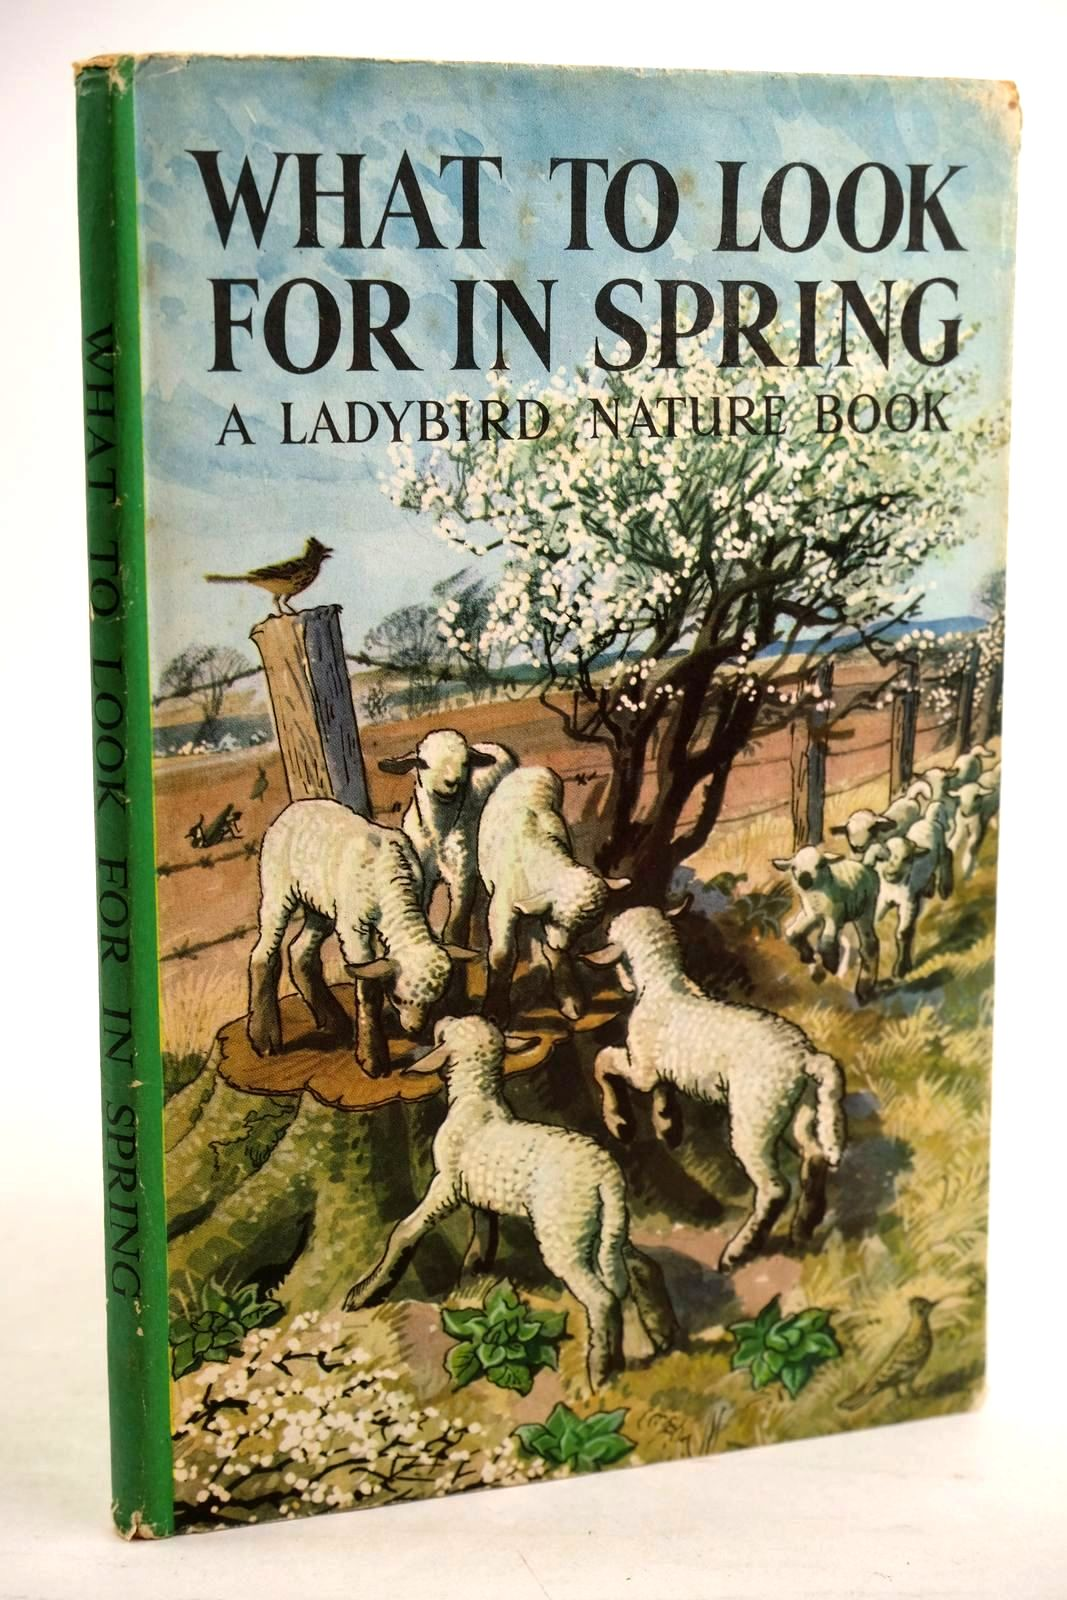 Photo of WHAT TO LOOK FOR IN SPRING written by Watson, E.L. Grant illustrated by Tunnicliffe, C.F. published by Wills & Hepworth Ltd. (STOCK CODE: 1320635)  for sale by Stella & Rose's Books